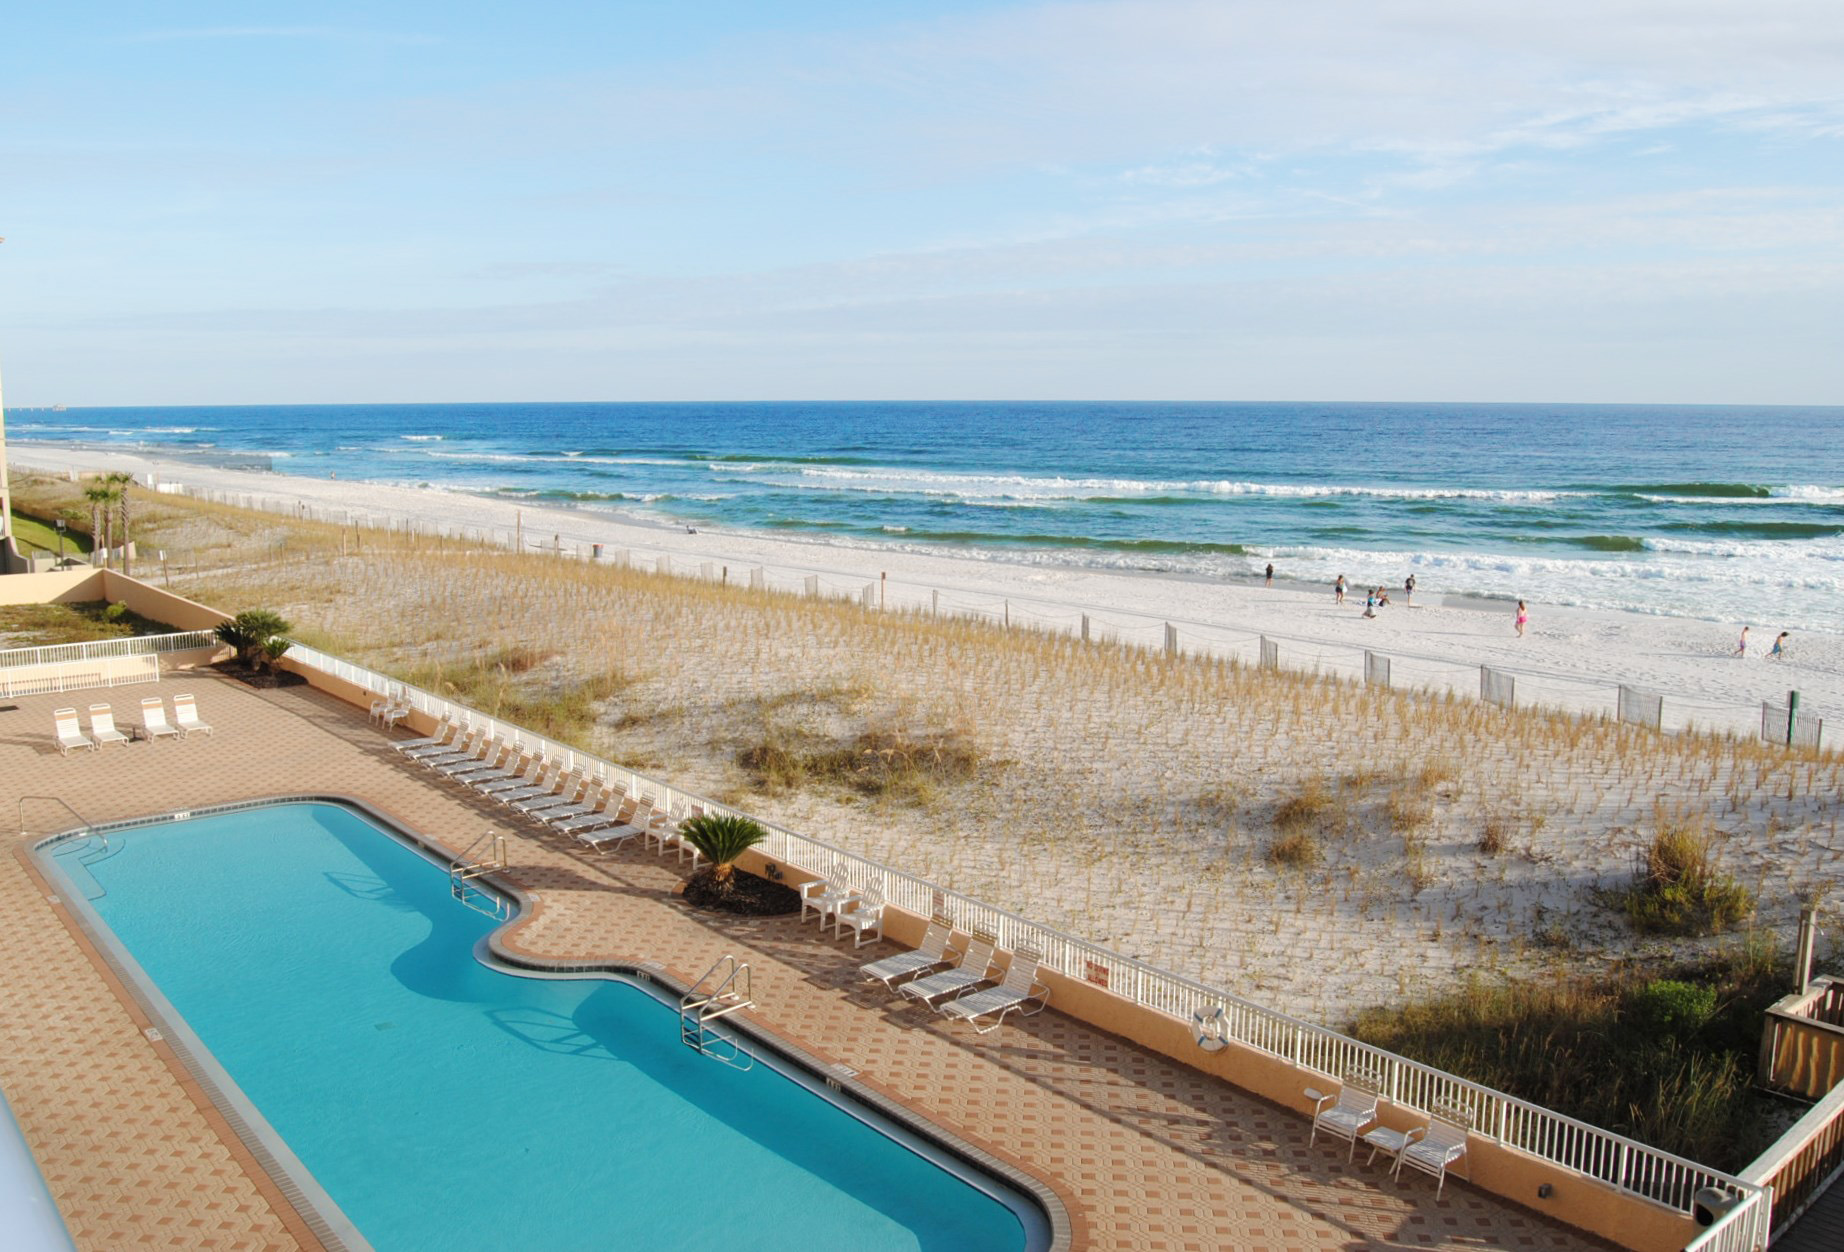 Balcony - Islander Beach 4009 Fort Walton Beach Okaloosa Island Vacation Rentals